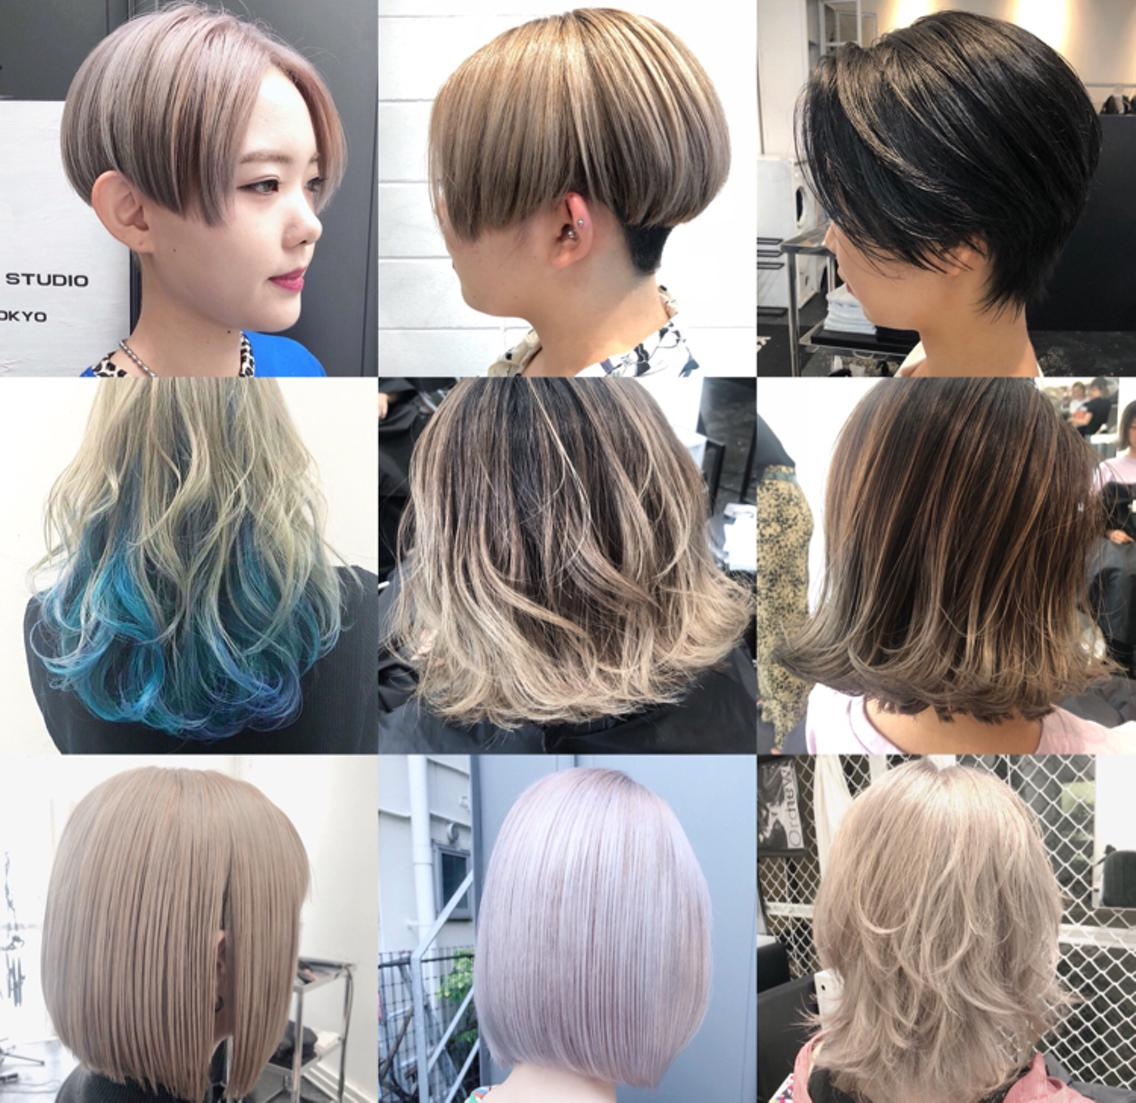 【THE_DAY_OK】++GUEST STYLE IS SHORT_MASH_BOB...++